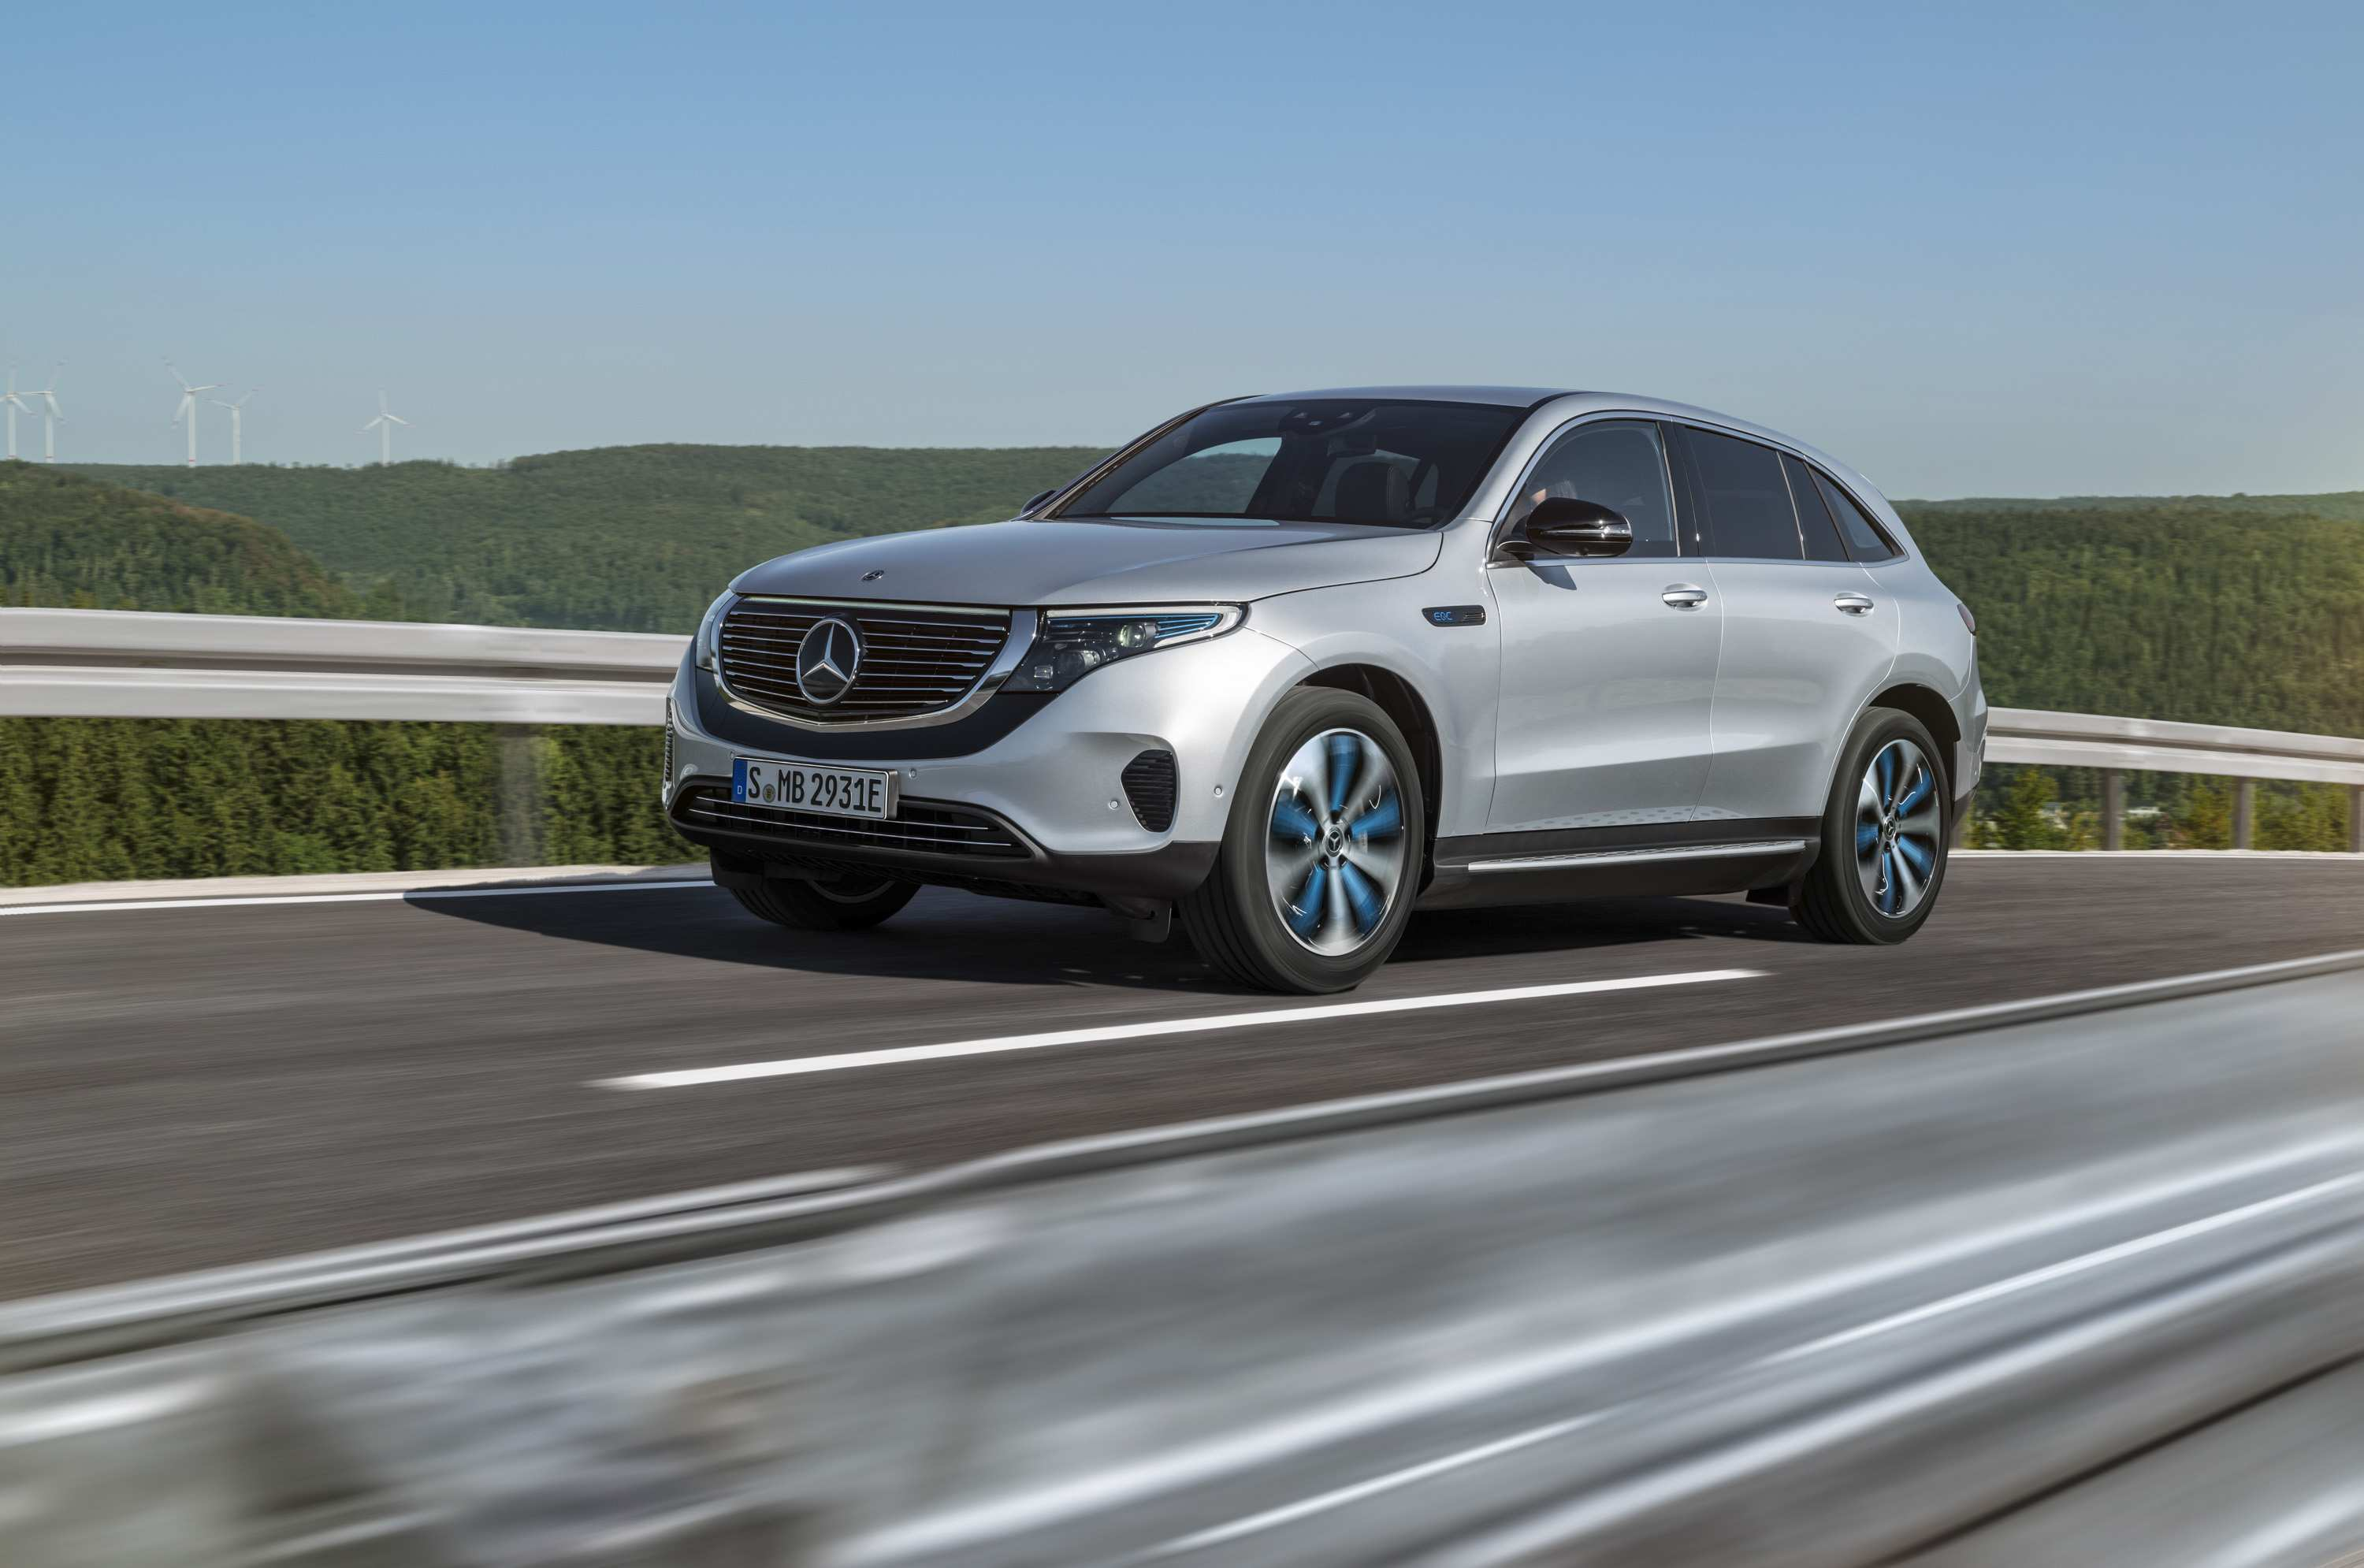 17 Best Review Eqc Mercedes 2019 Picture with Eqc Mercedes 2019